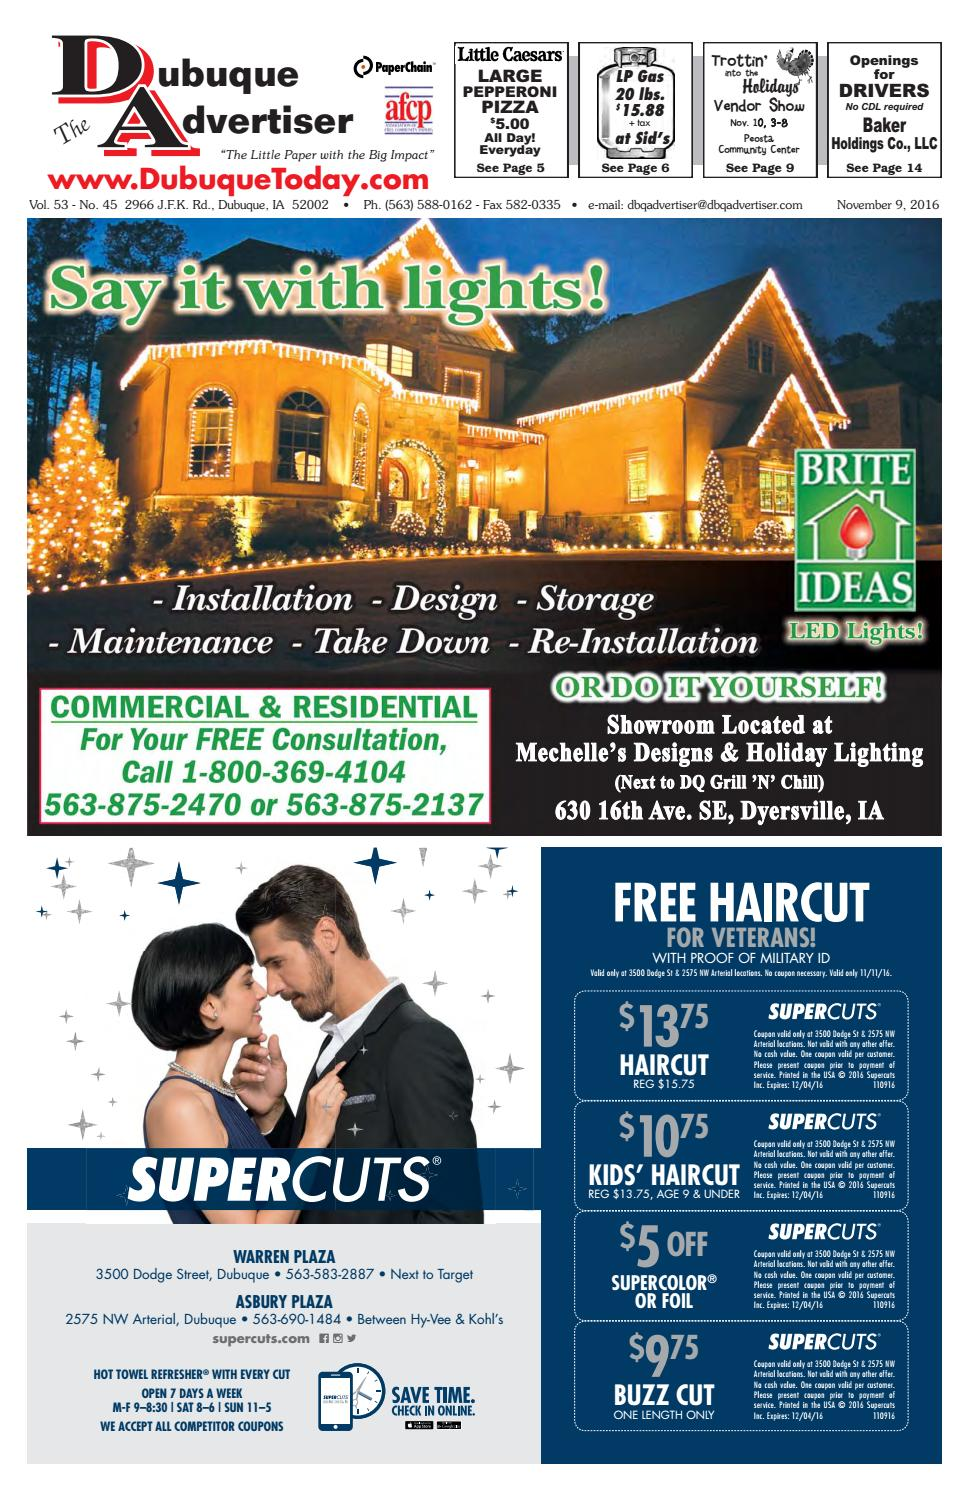 The dubuque advertiser november 9 2016 by the dubuque advertiser the dubuque advertiser november 9 2016 by the dubuque advertiser issuu fandeluxe Gallery